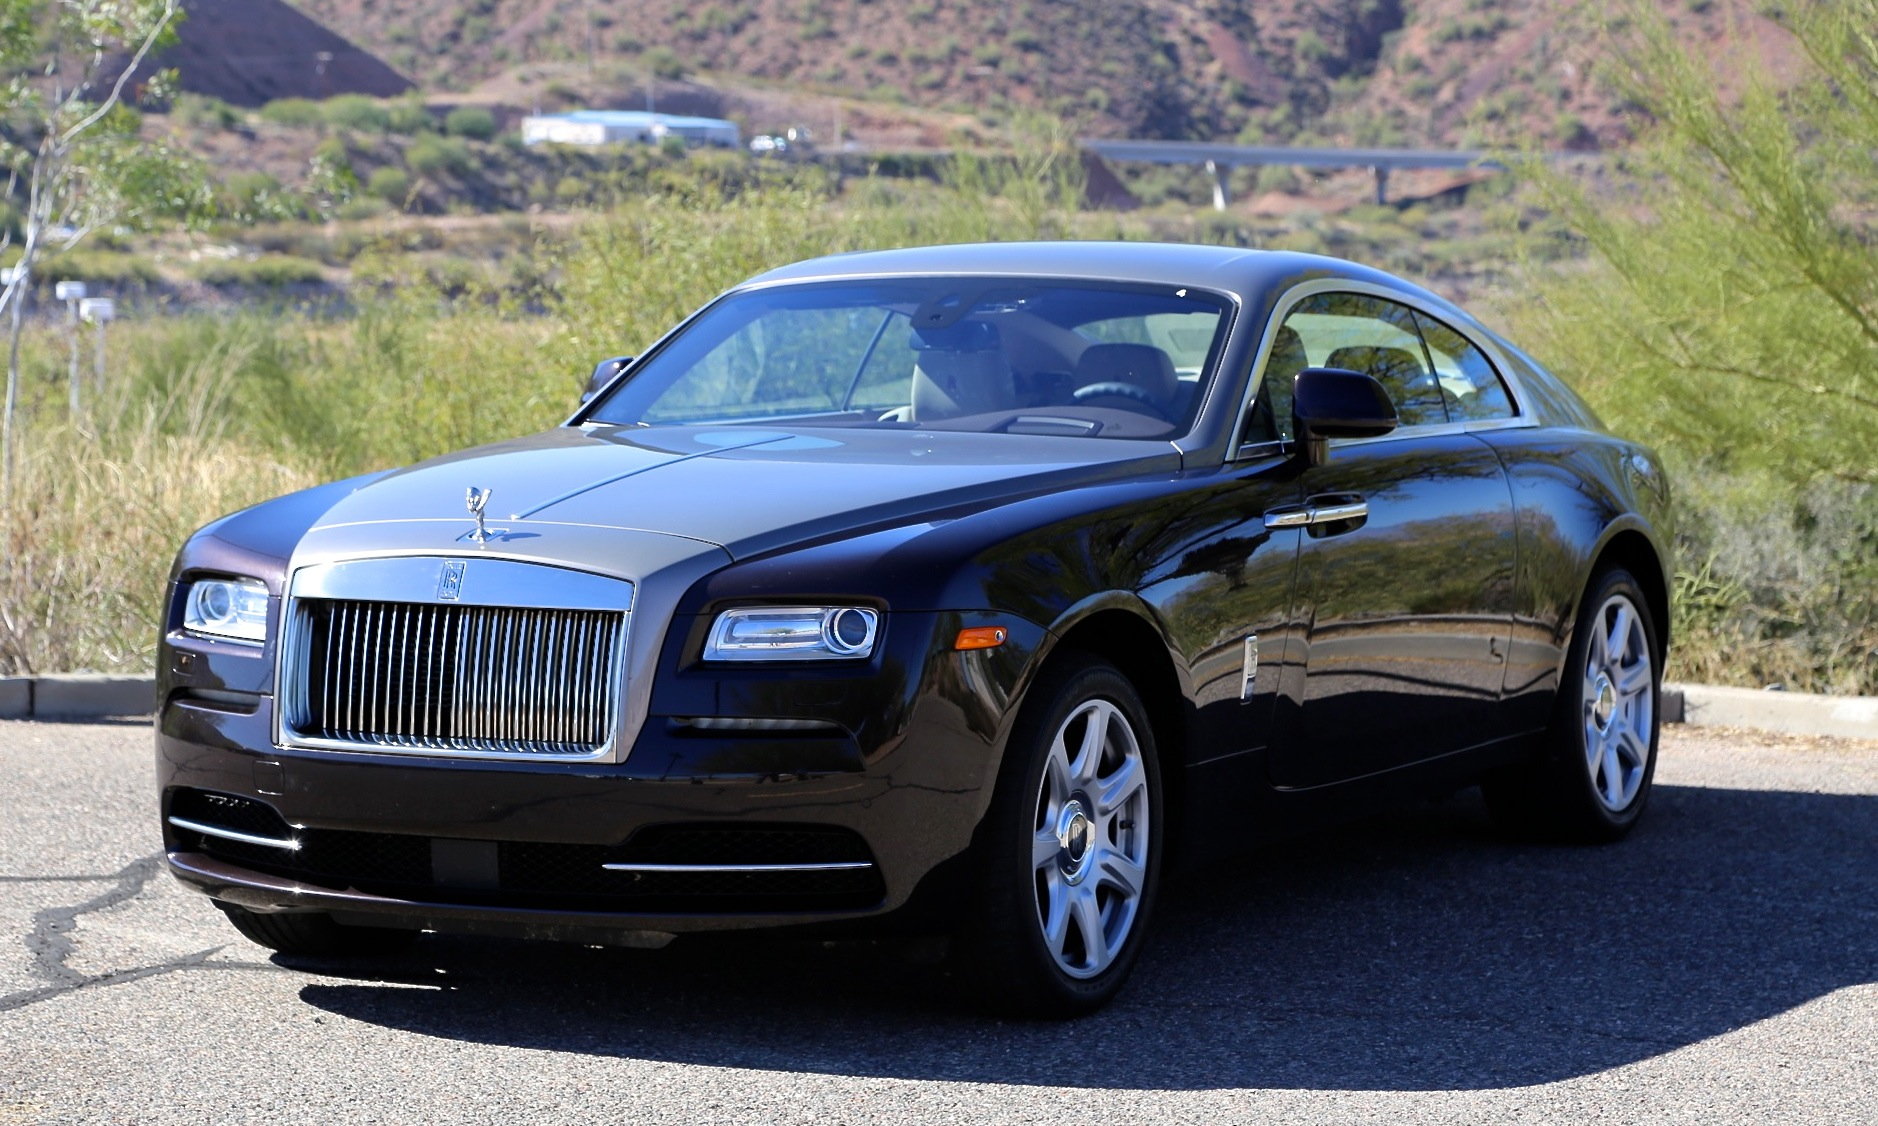 2014 Rolls Royce Wraith First Drive Review